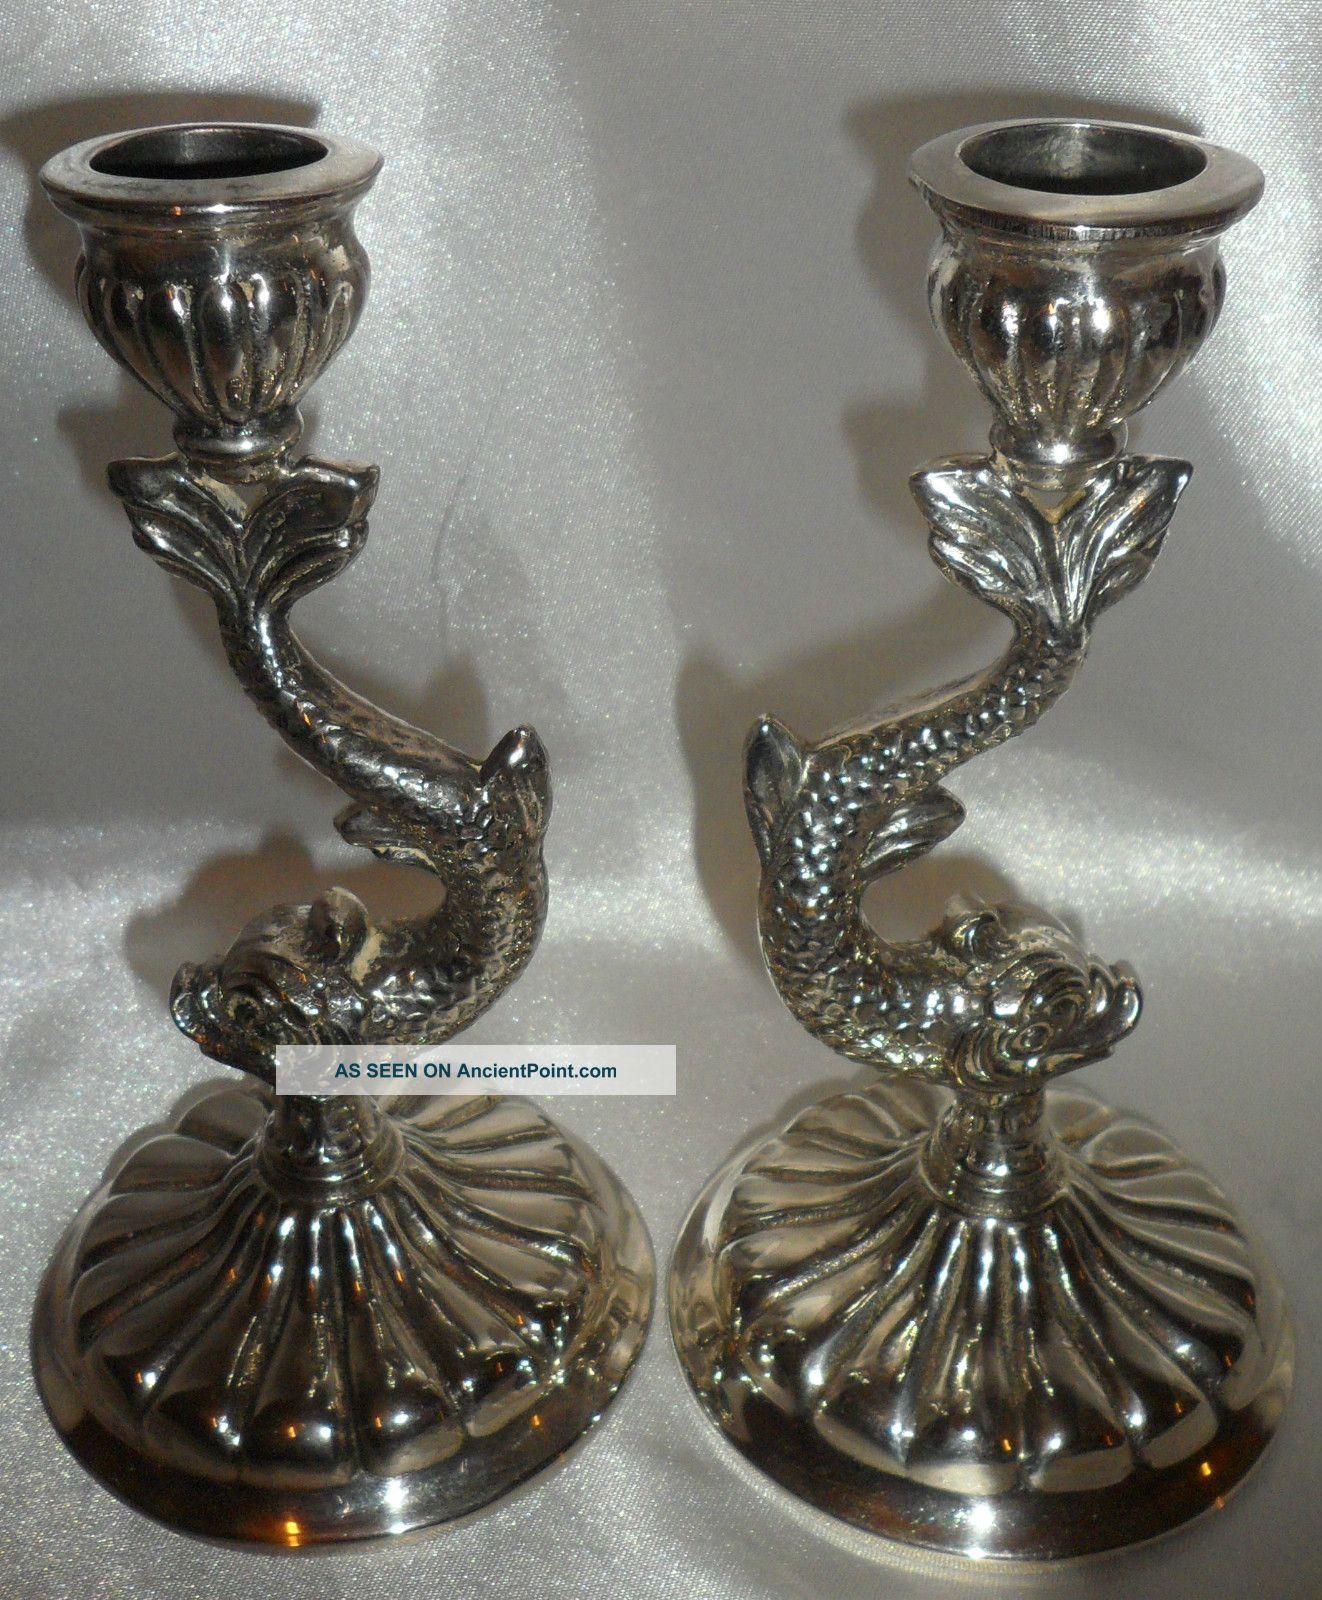 A Pair Of Vintage Heavy Beautifully Cast Fish Design One Piece Candlesticks Candlesticks & Candelabra photo